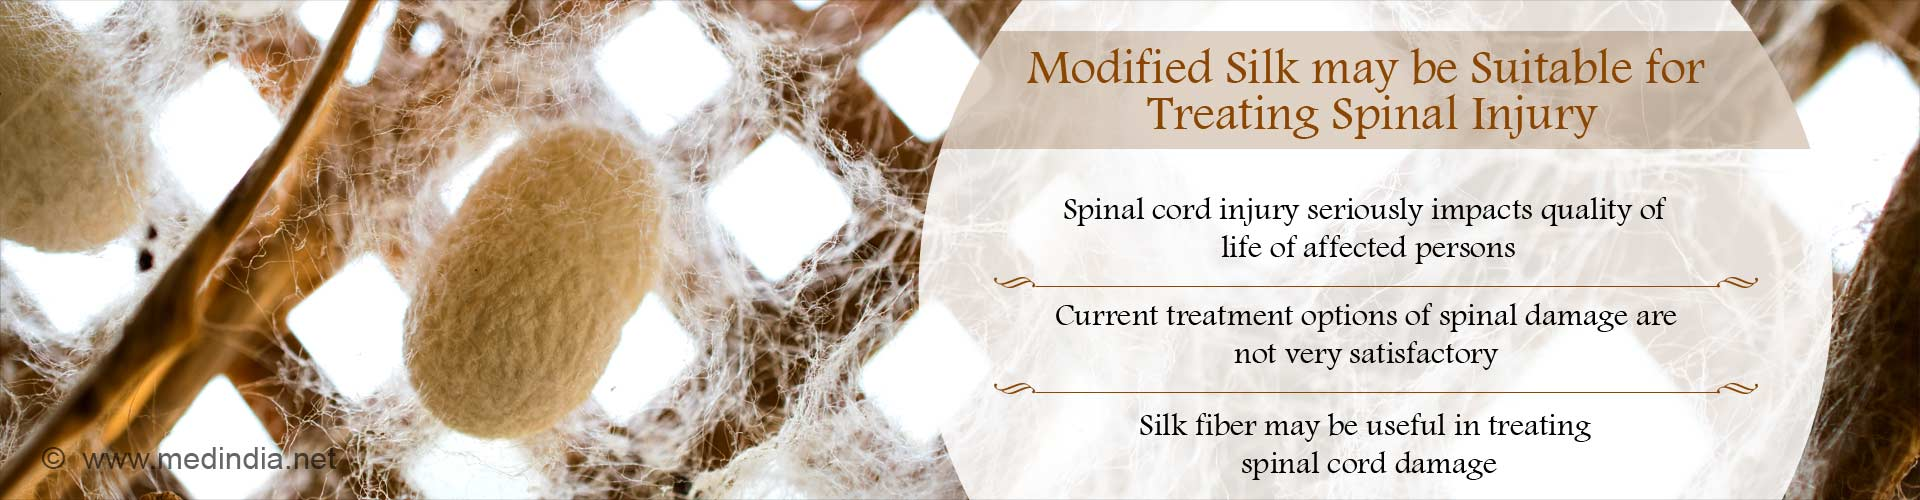 Spinal Cord Damage May Be Treated Using Silk Filament